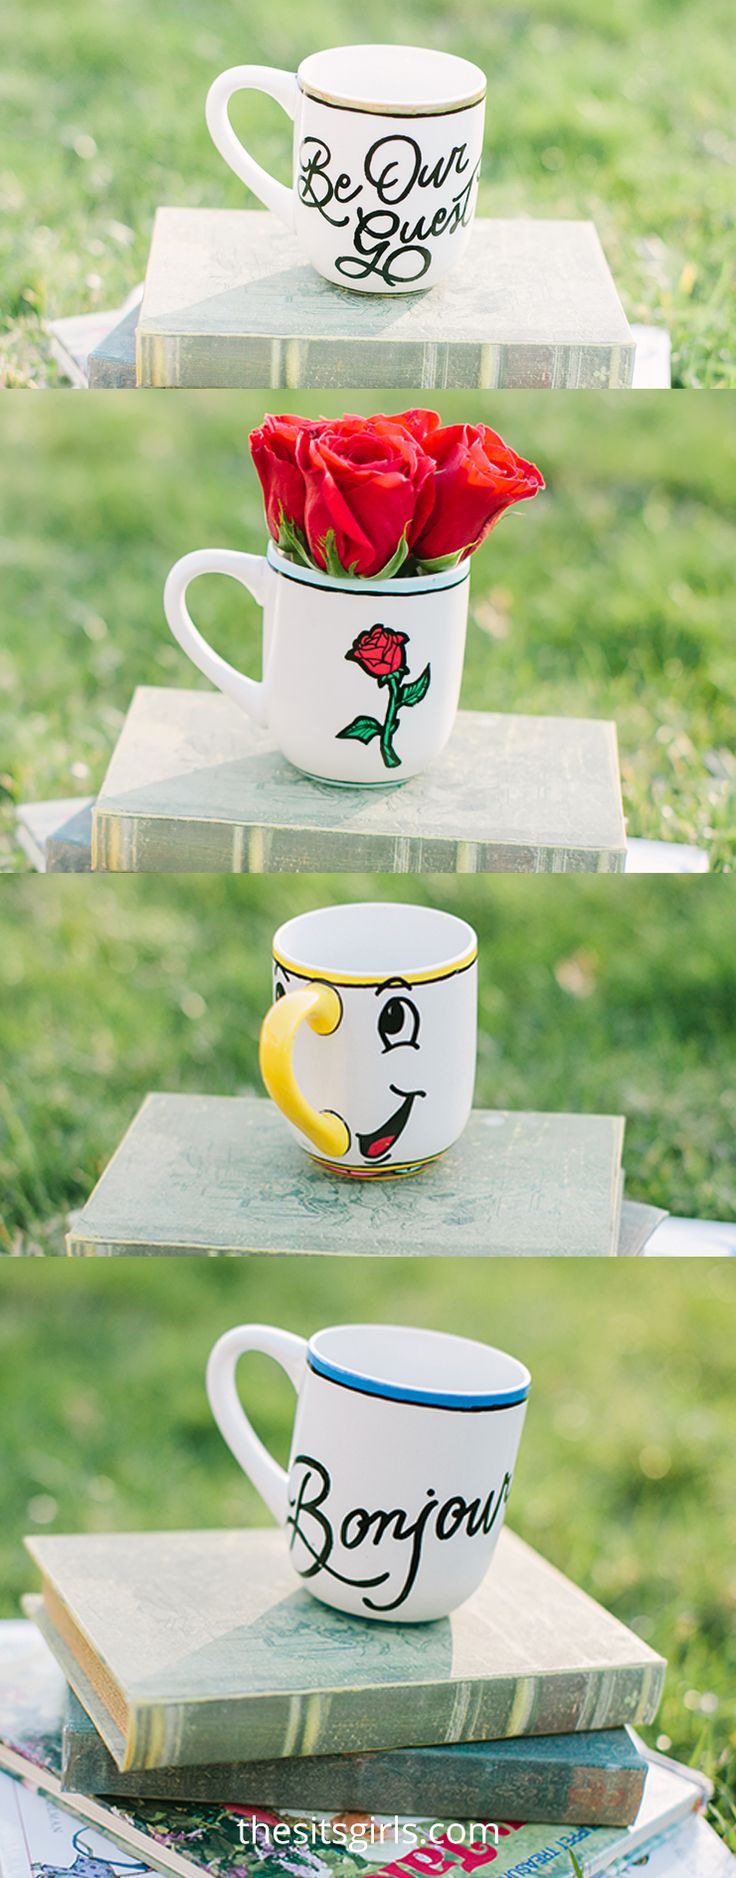 DIY Chip Mug | Beauty And The Beast Mugs | Chip Sharpie Mug. Pinned over 5K times.